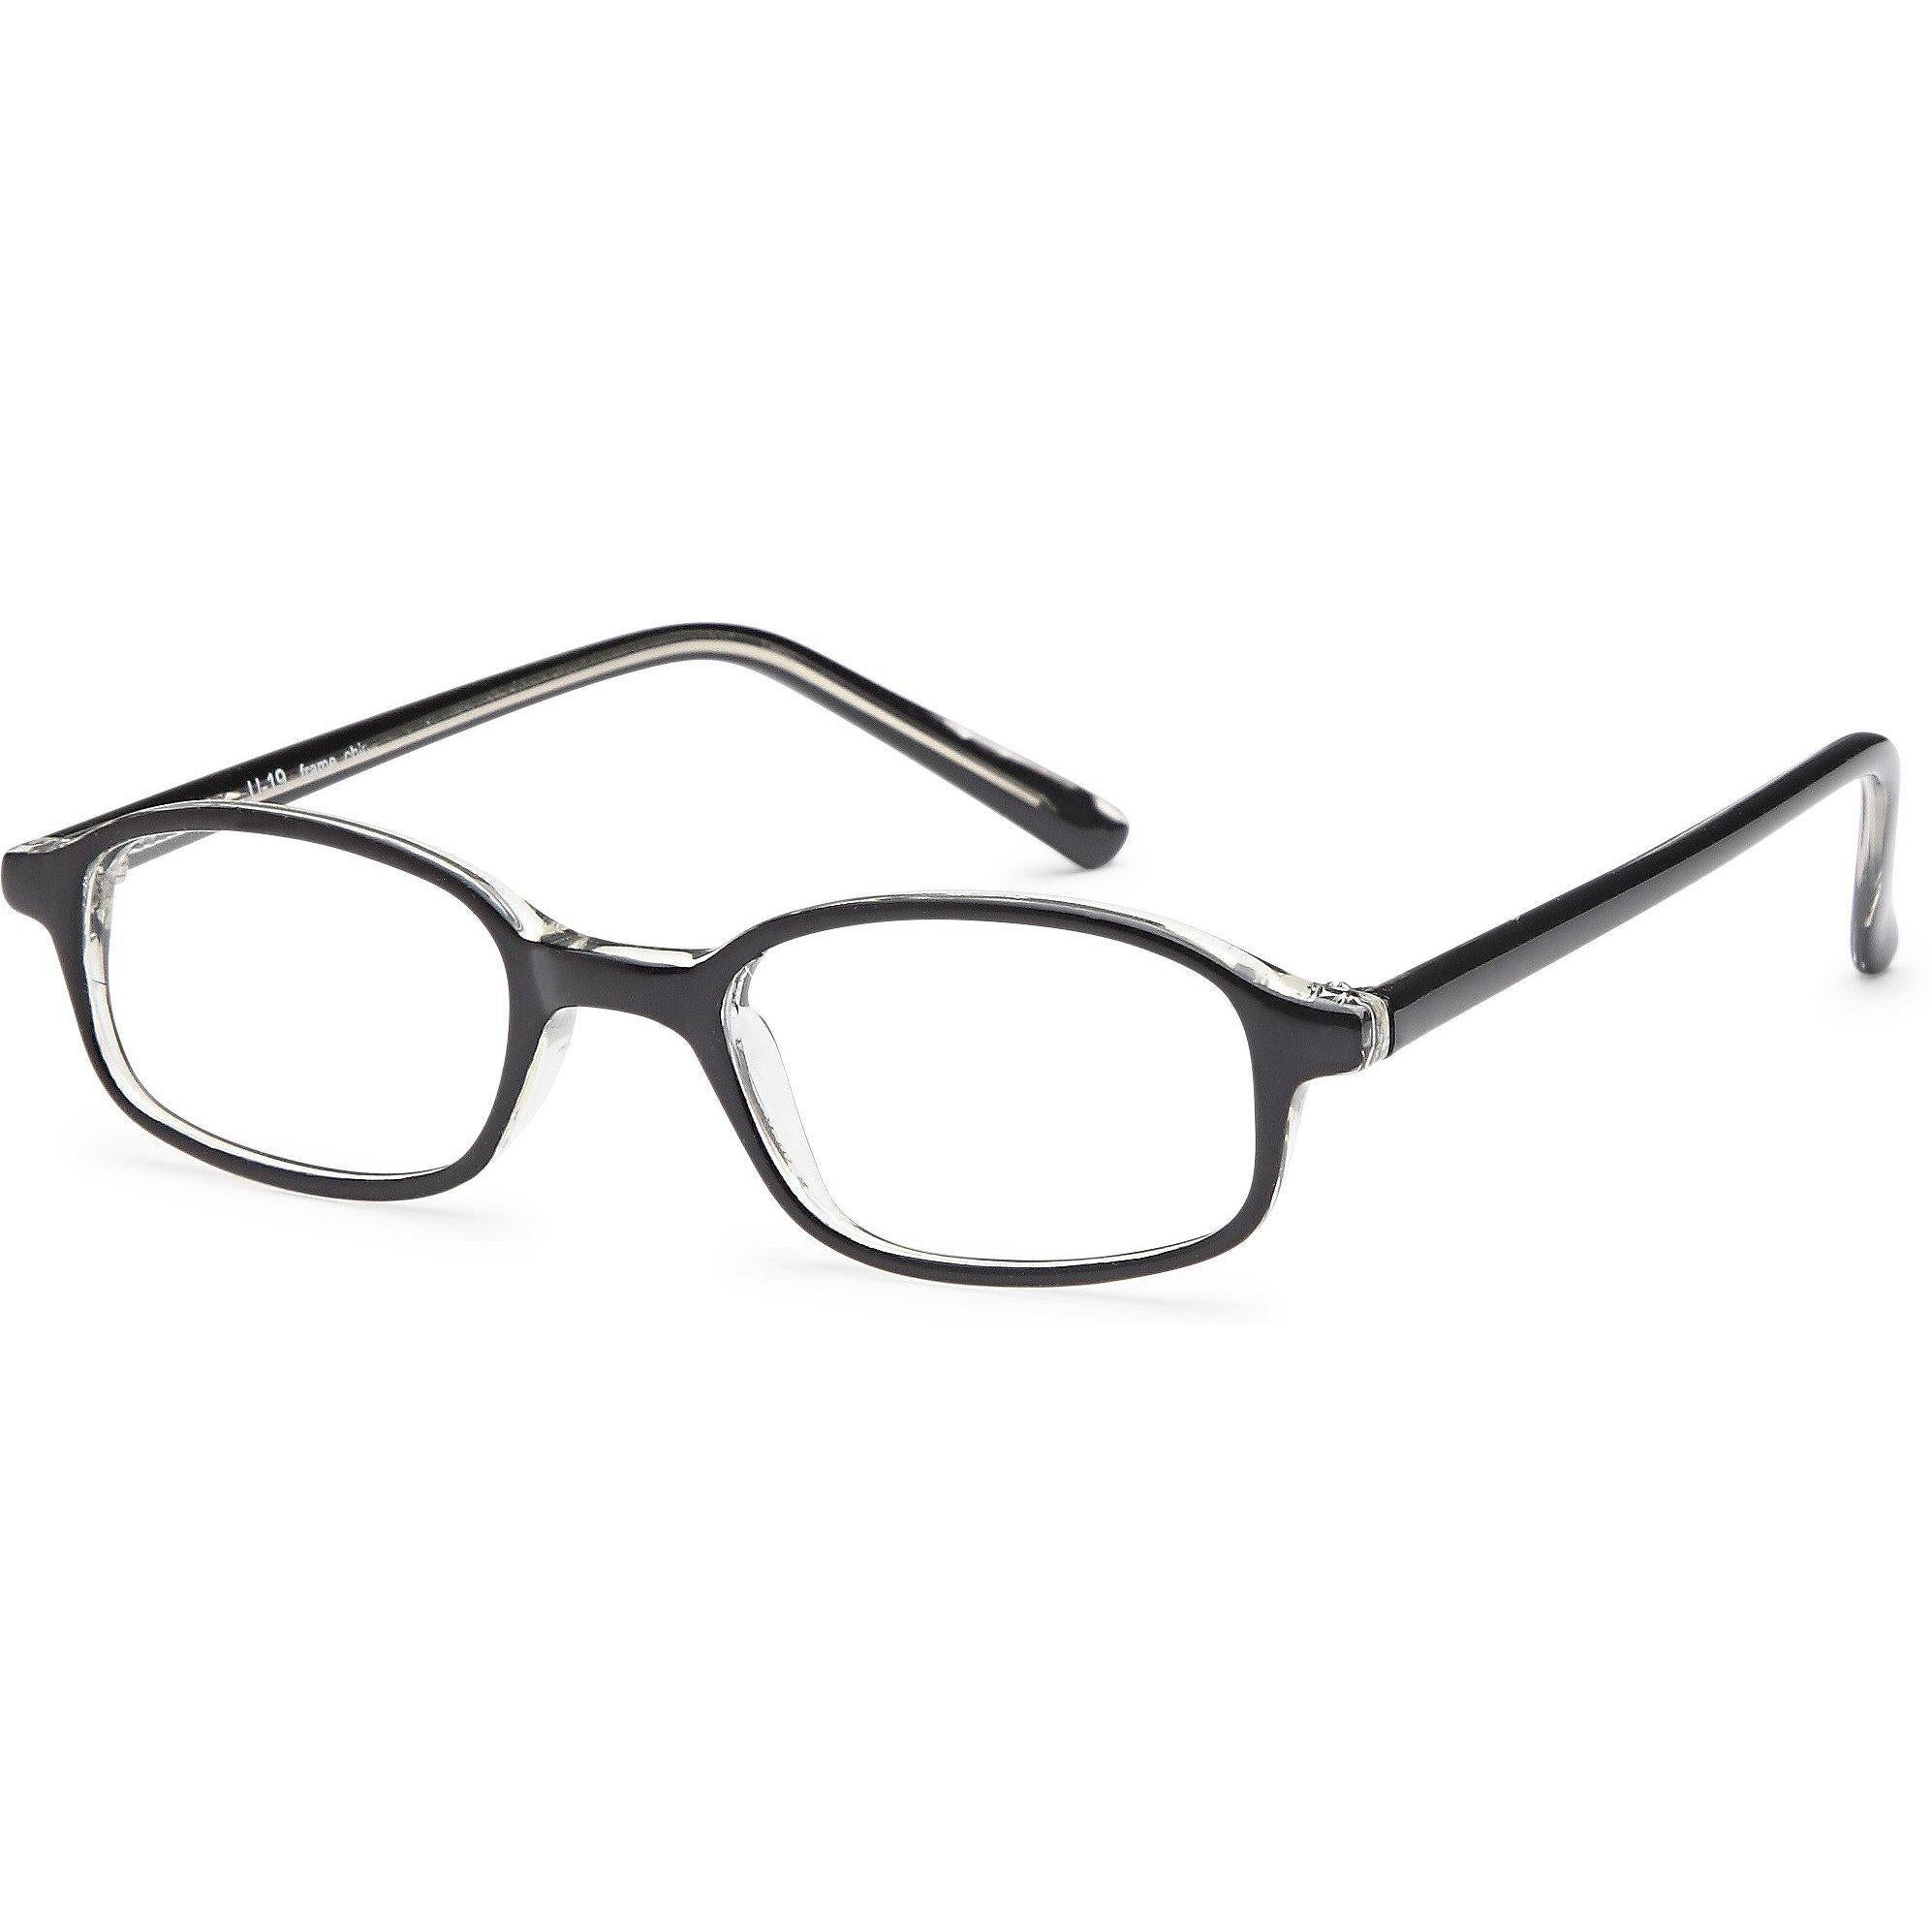 4U Prescription Glasses U 19 Optical Eyeglasses Frame - timetoshade